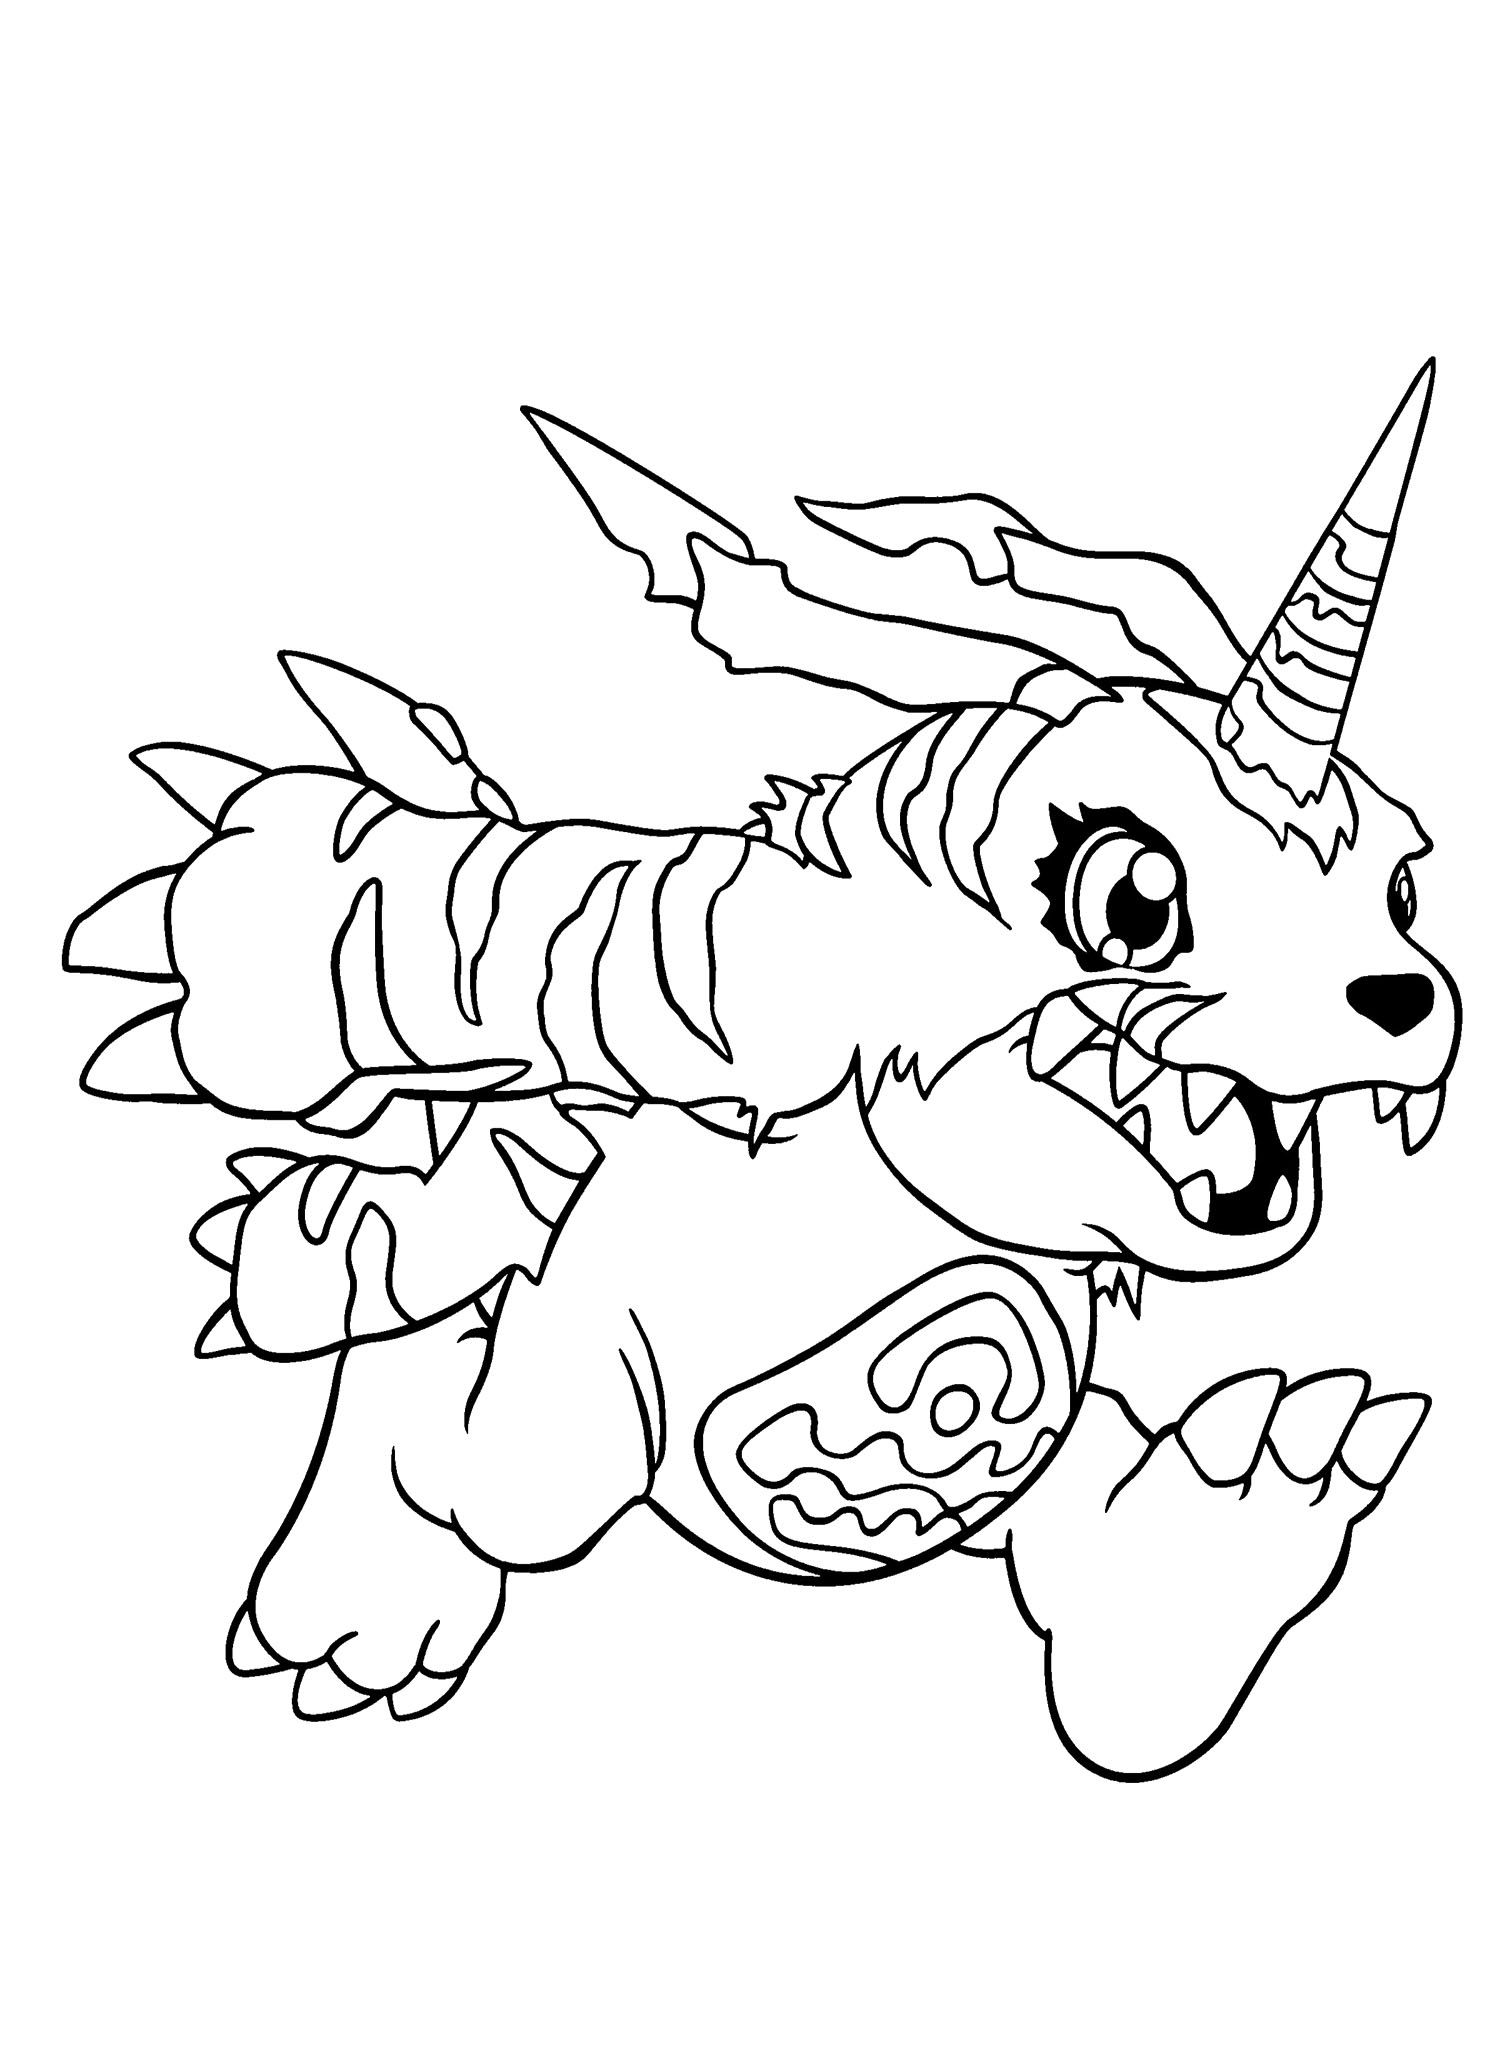 Gabumon Running Coloring Page | Digimon Coloring Page | Pinterest ...